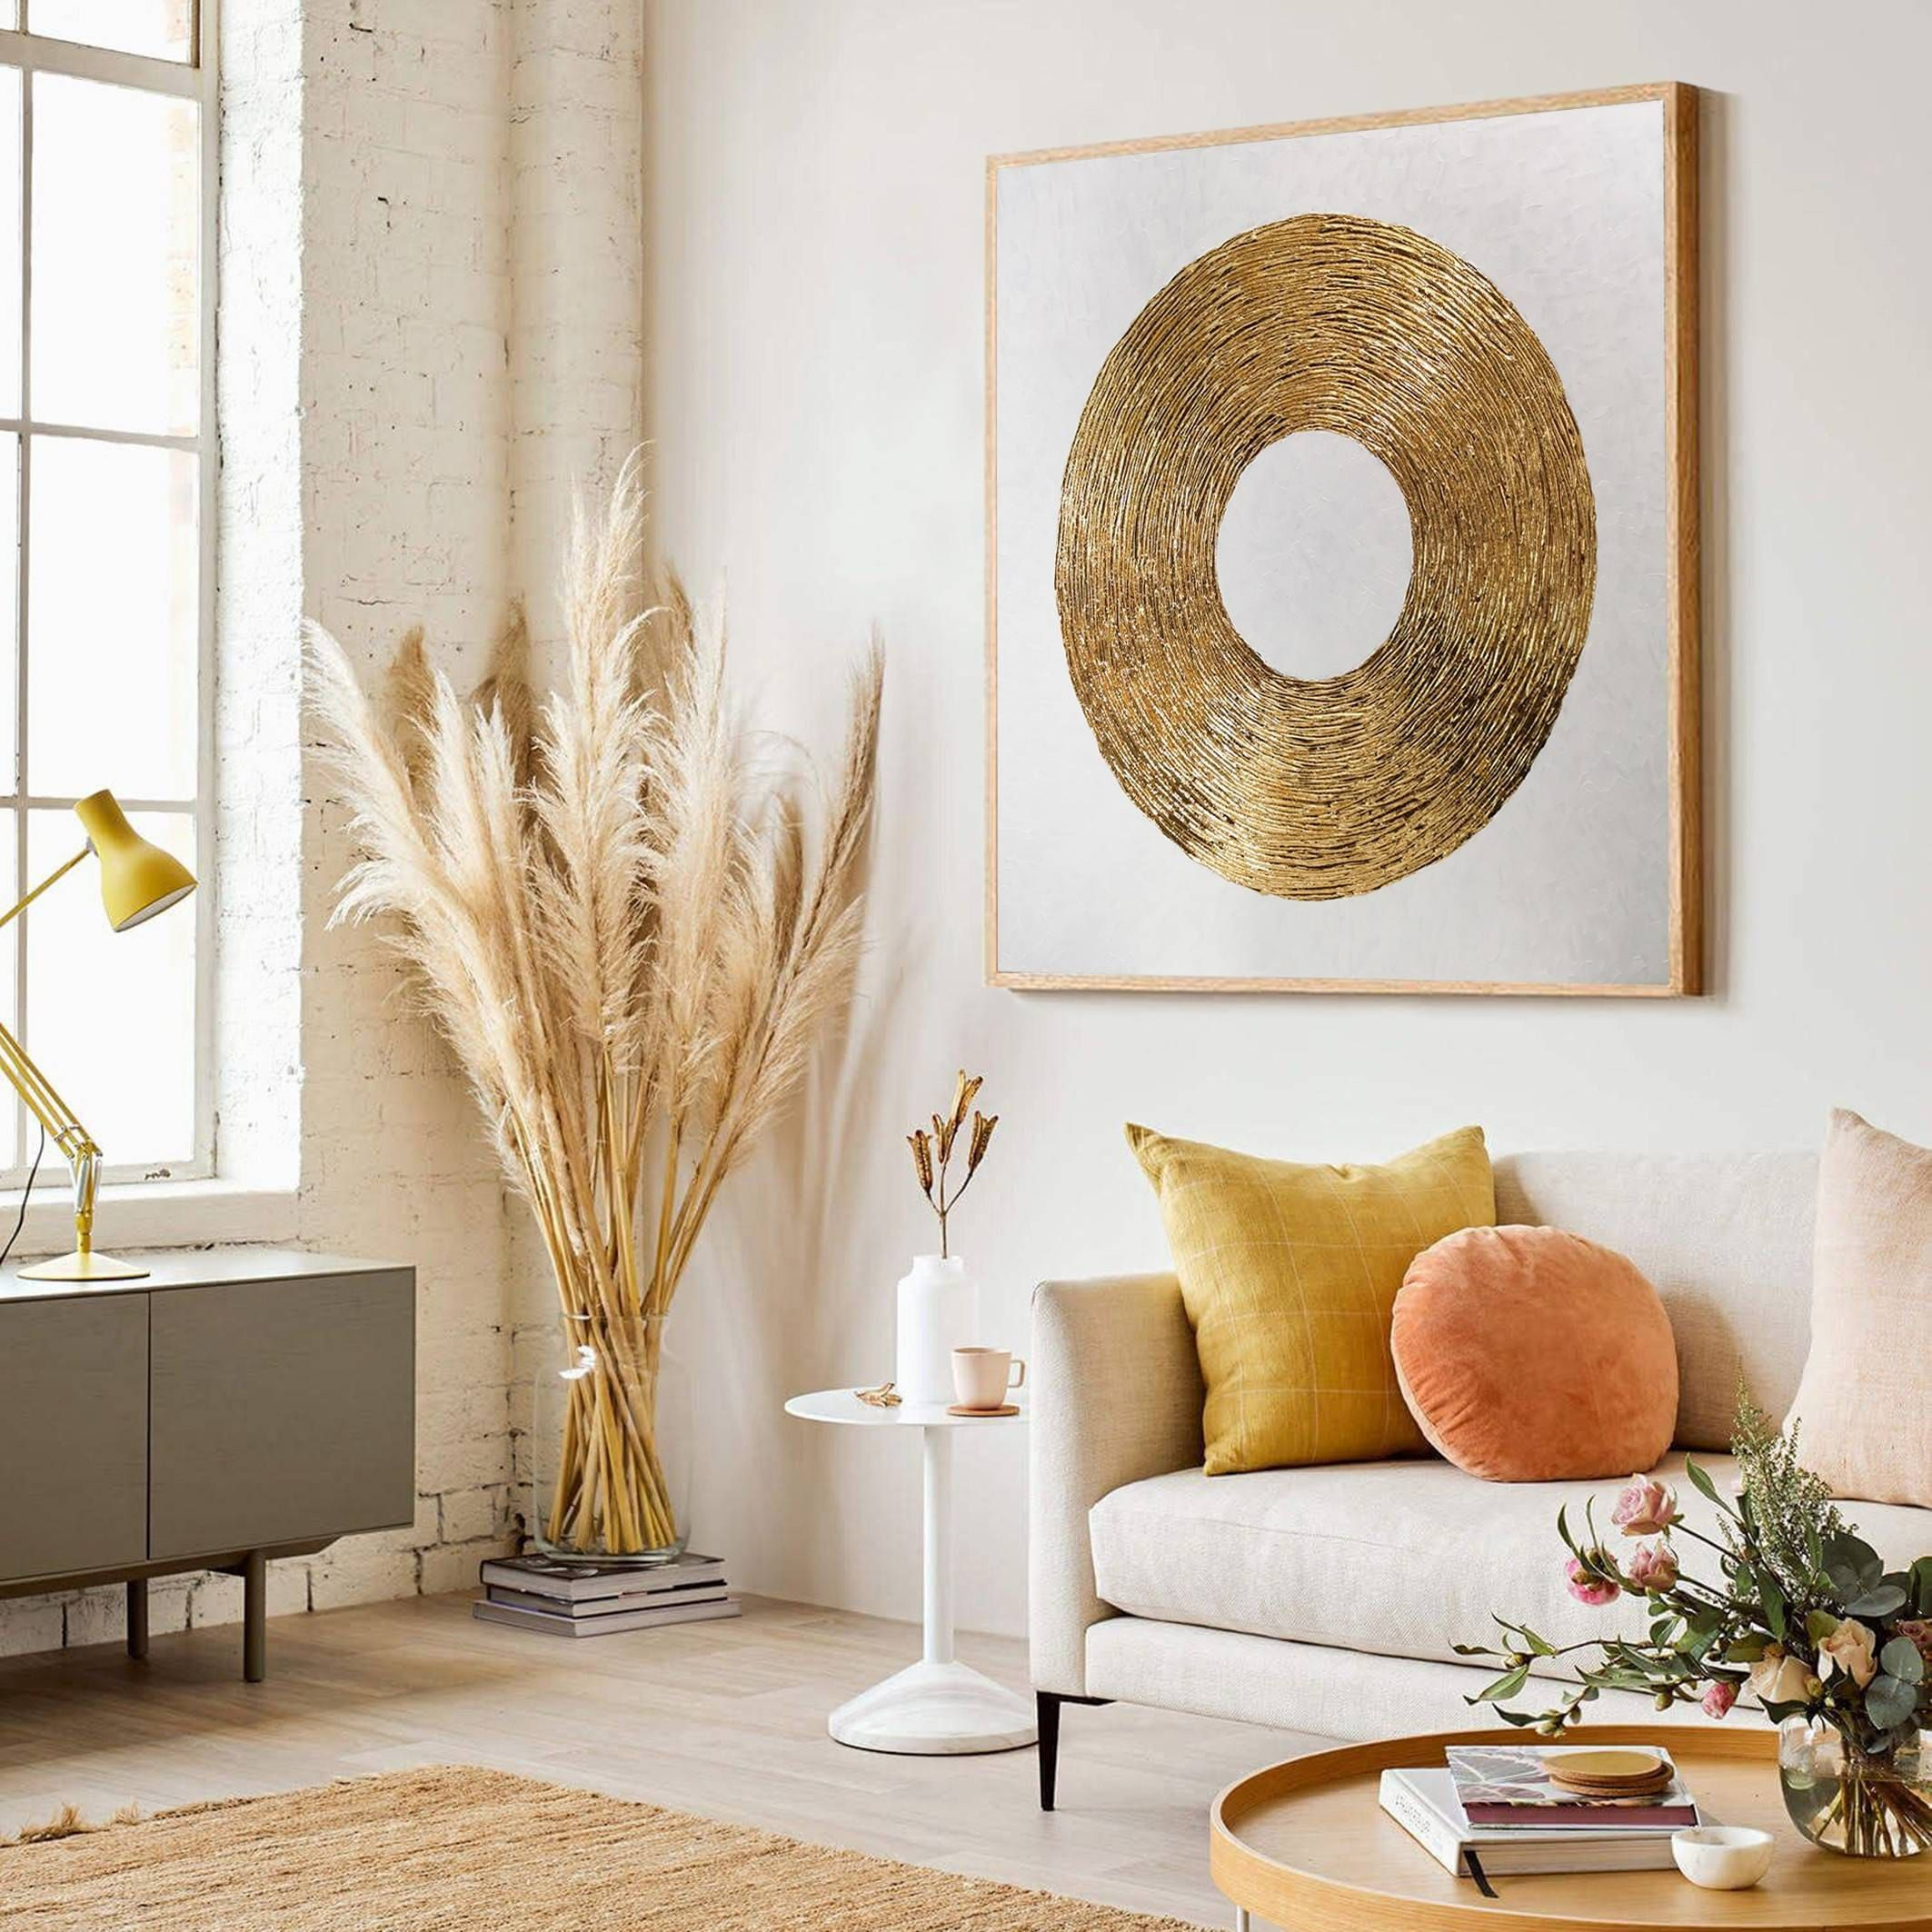 Gold Painting Gold Leaf Wall Art Foyer Wall Decor Master Etsy In 2021 Home Decor Living Room Designs Room Decor Home decor living room art